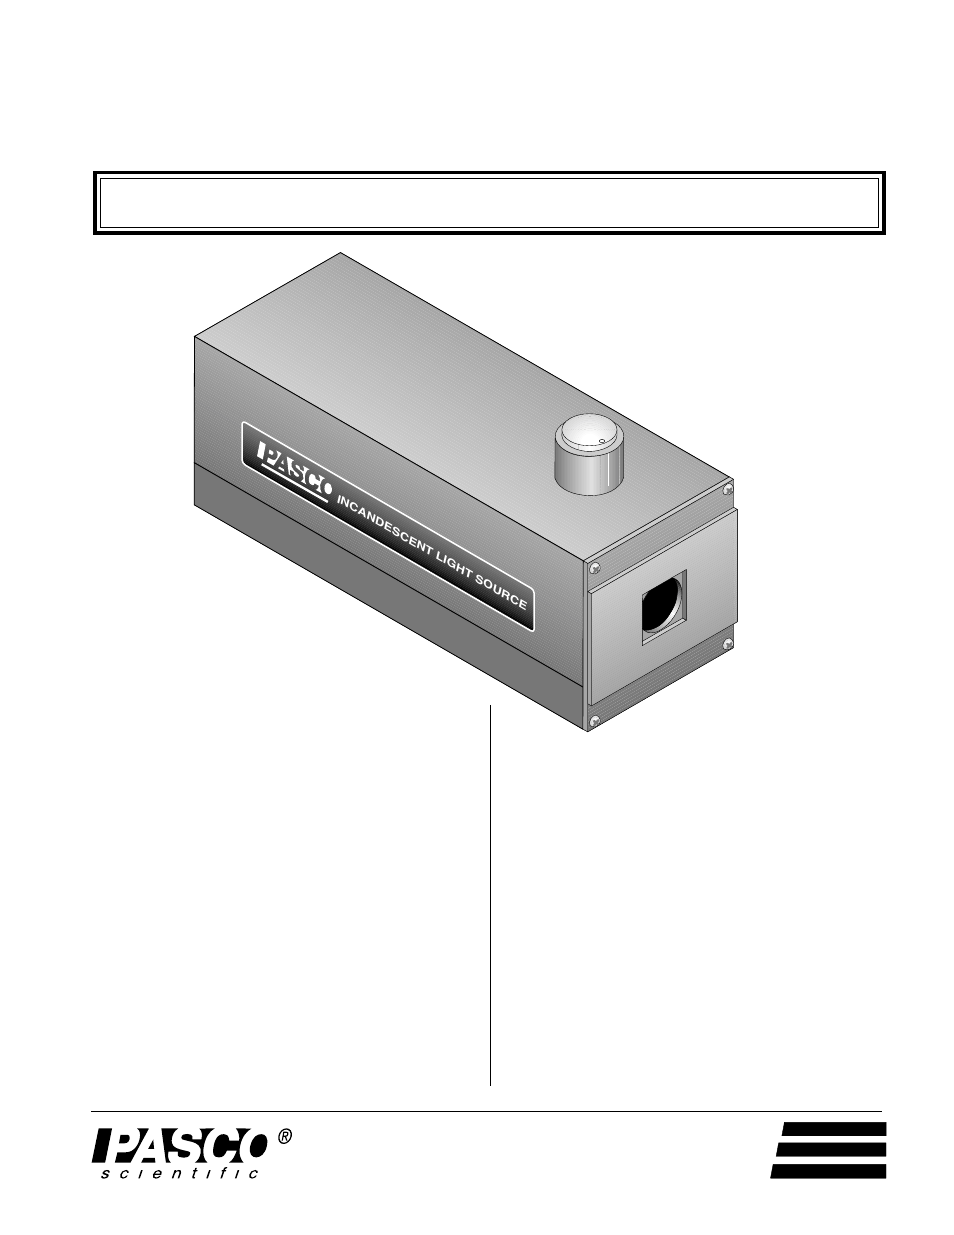 PASCO OS-9102C INCANDESCENT LIGHT SOURCE User Manual | 4 pages